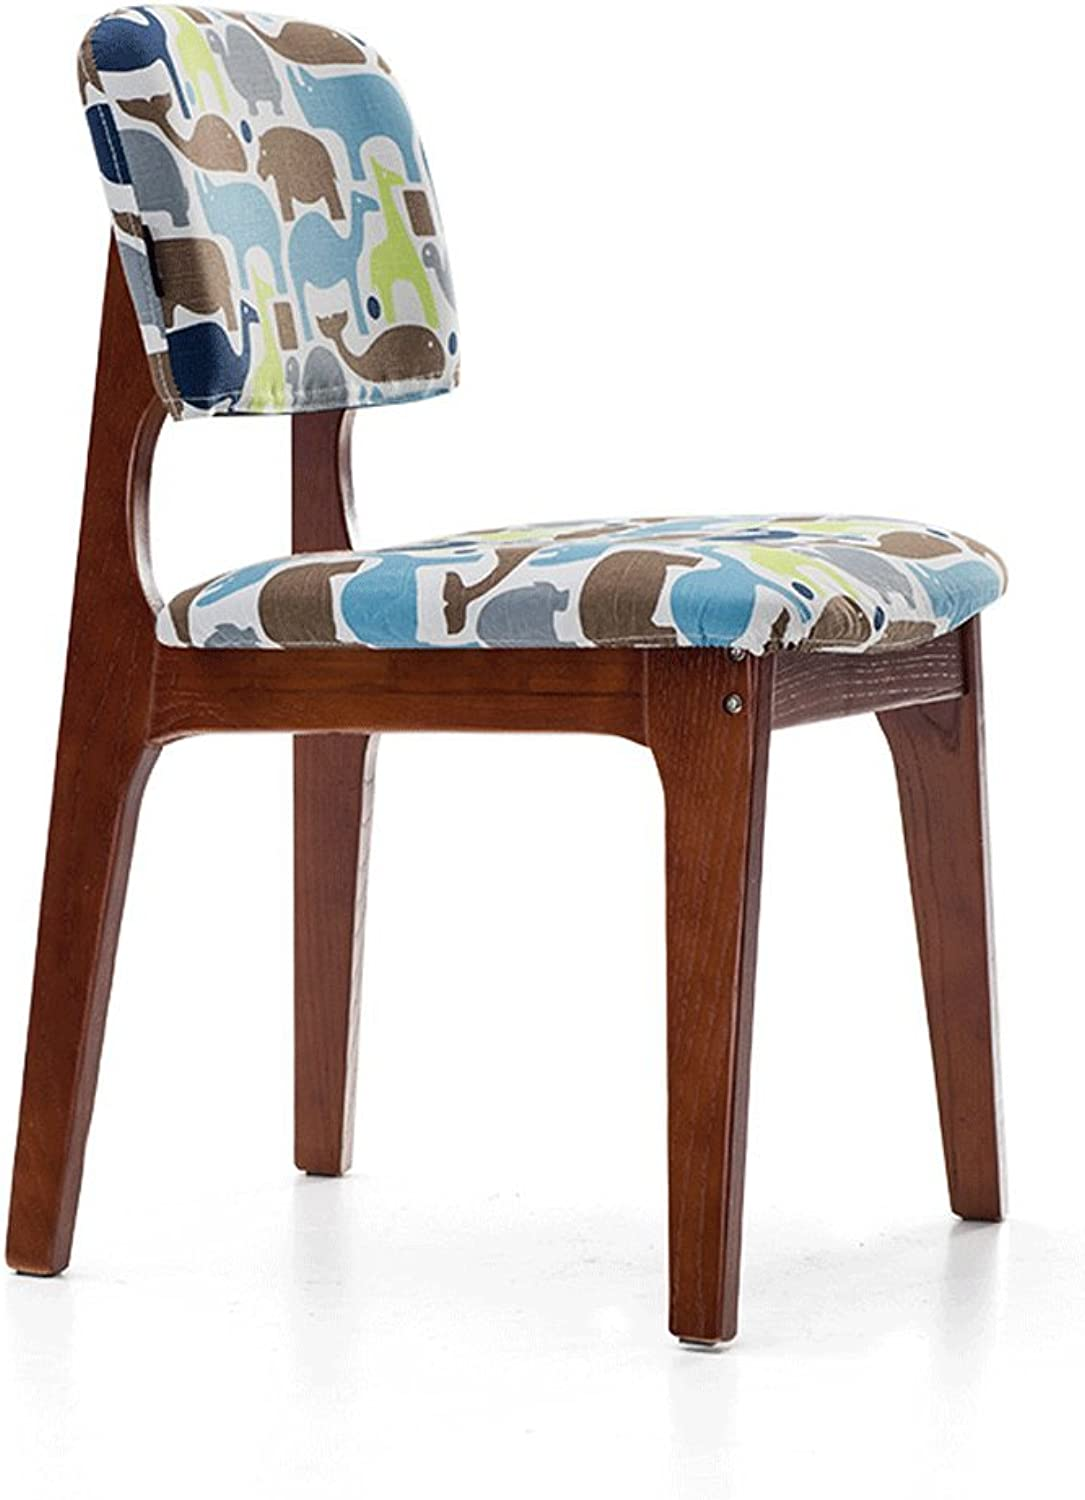 Barstool Solid Wood Chair Washable Fabric Seat Cover Dressing Table Dining Chair Study Chair Barstool Coffee Shop Chair